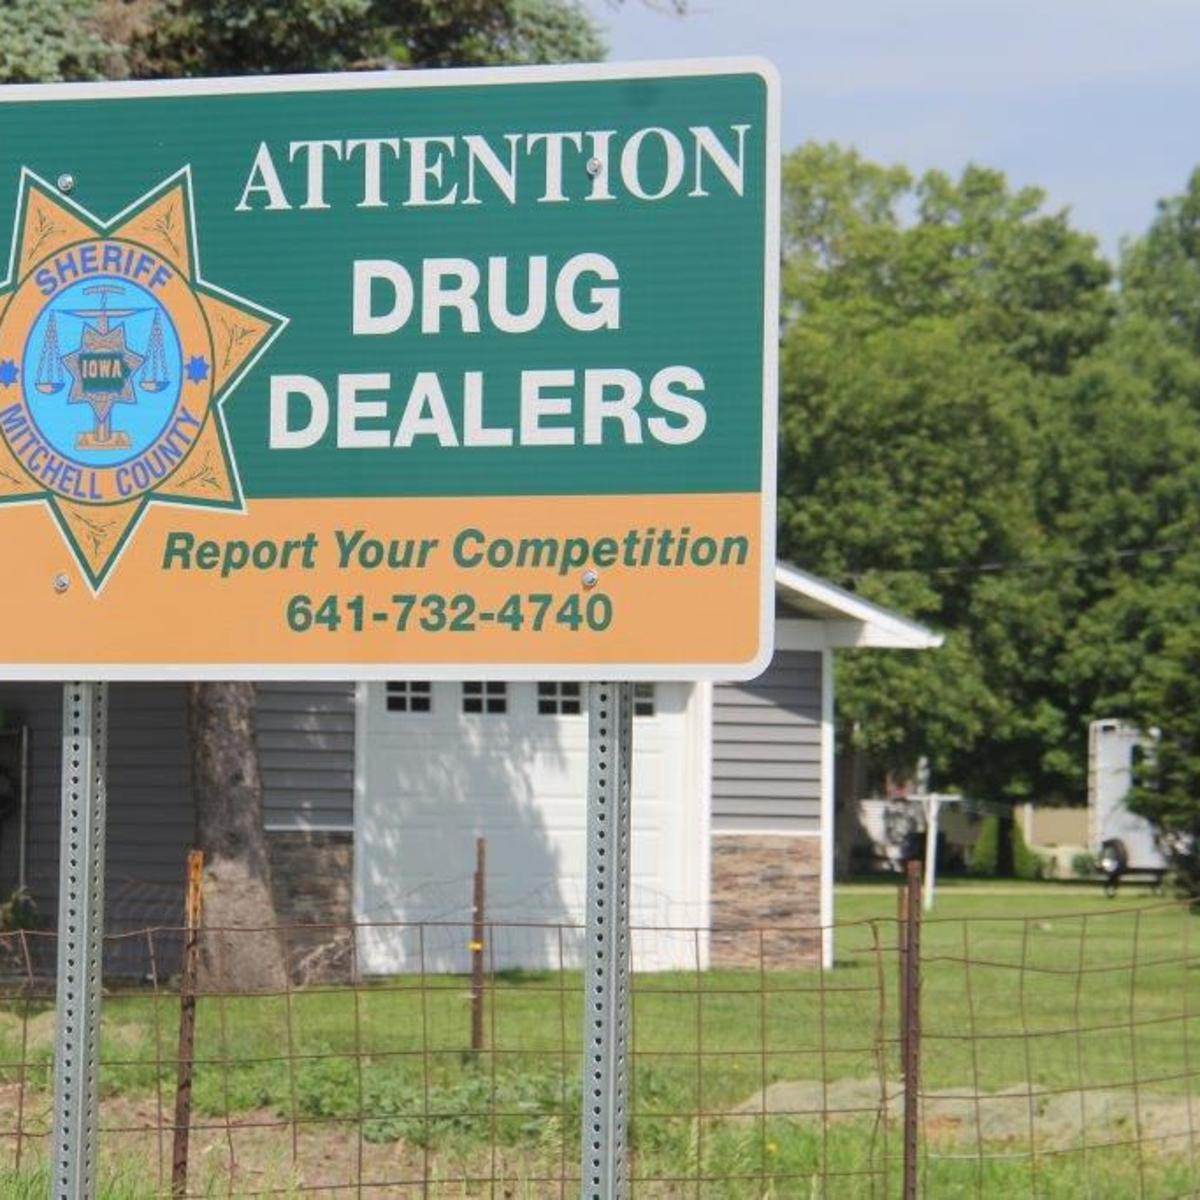 New county sign sends unique message to drug dealers   News